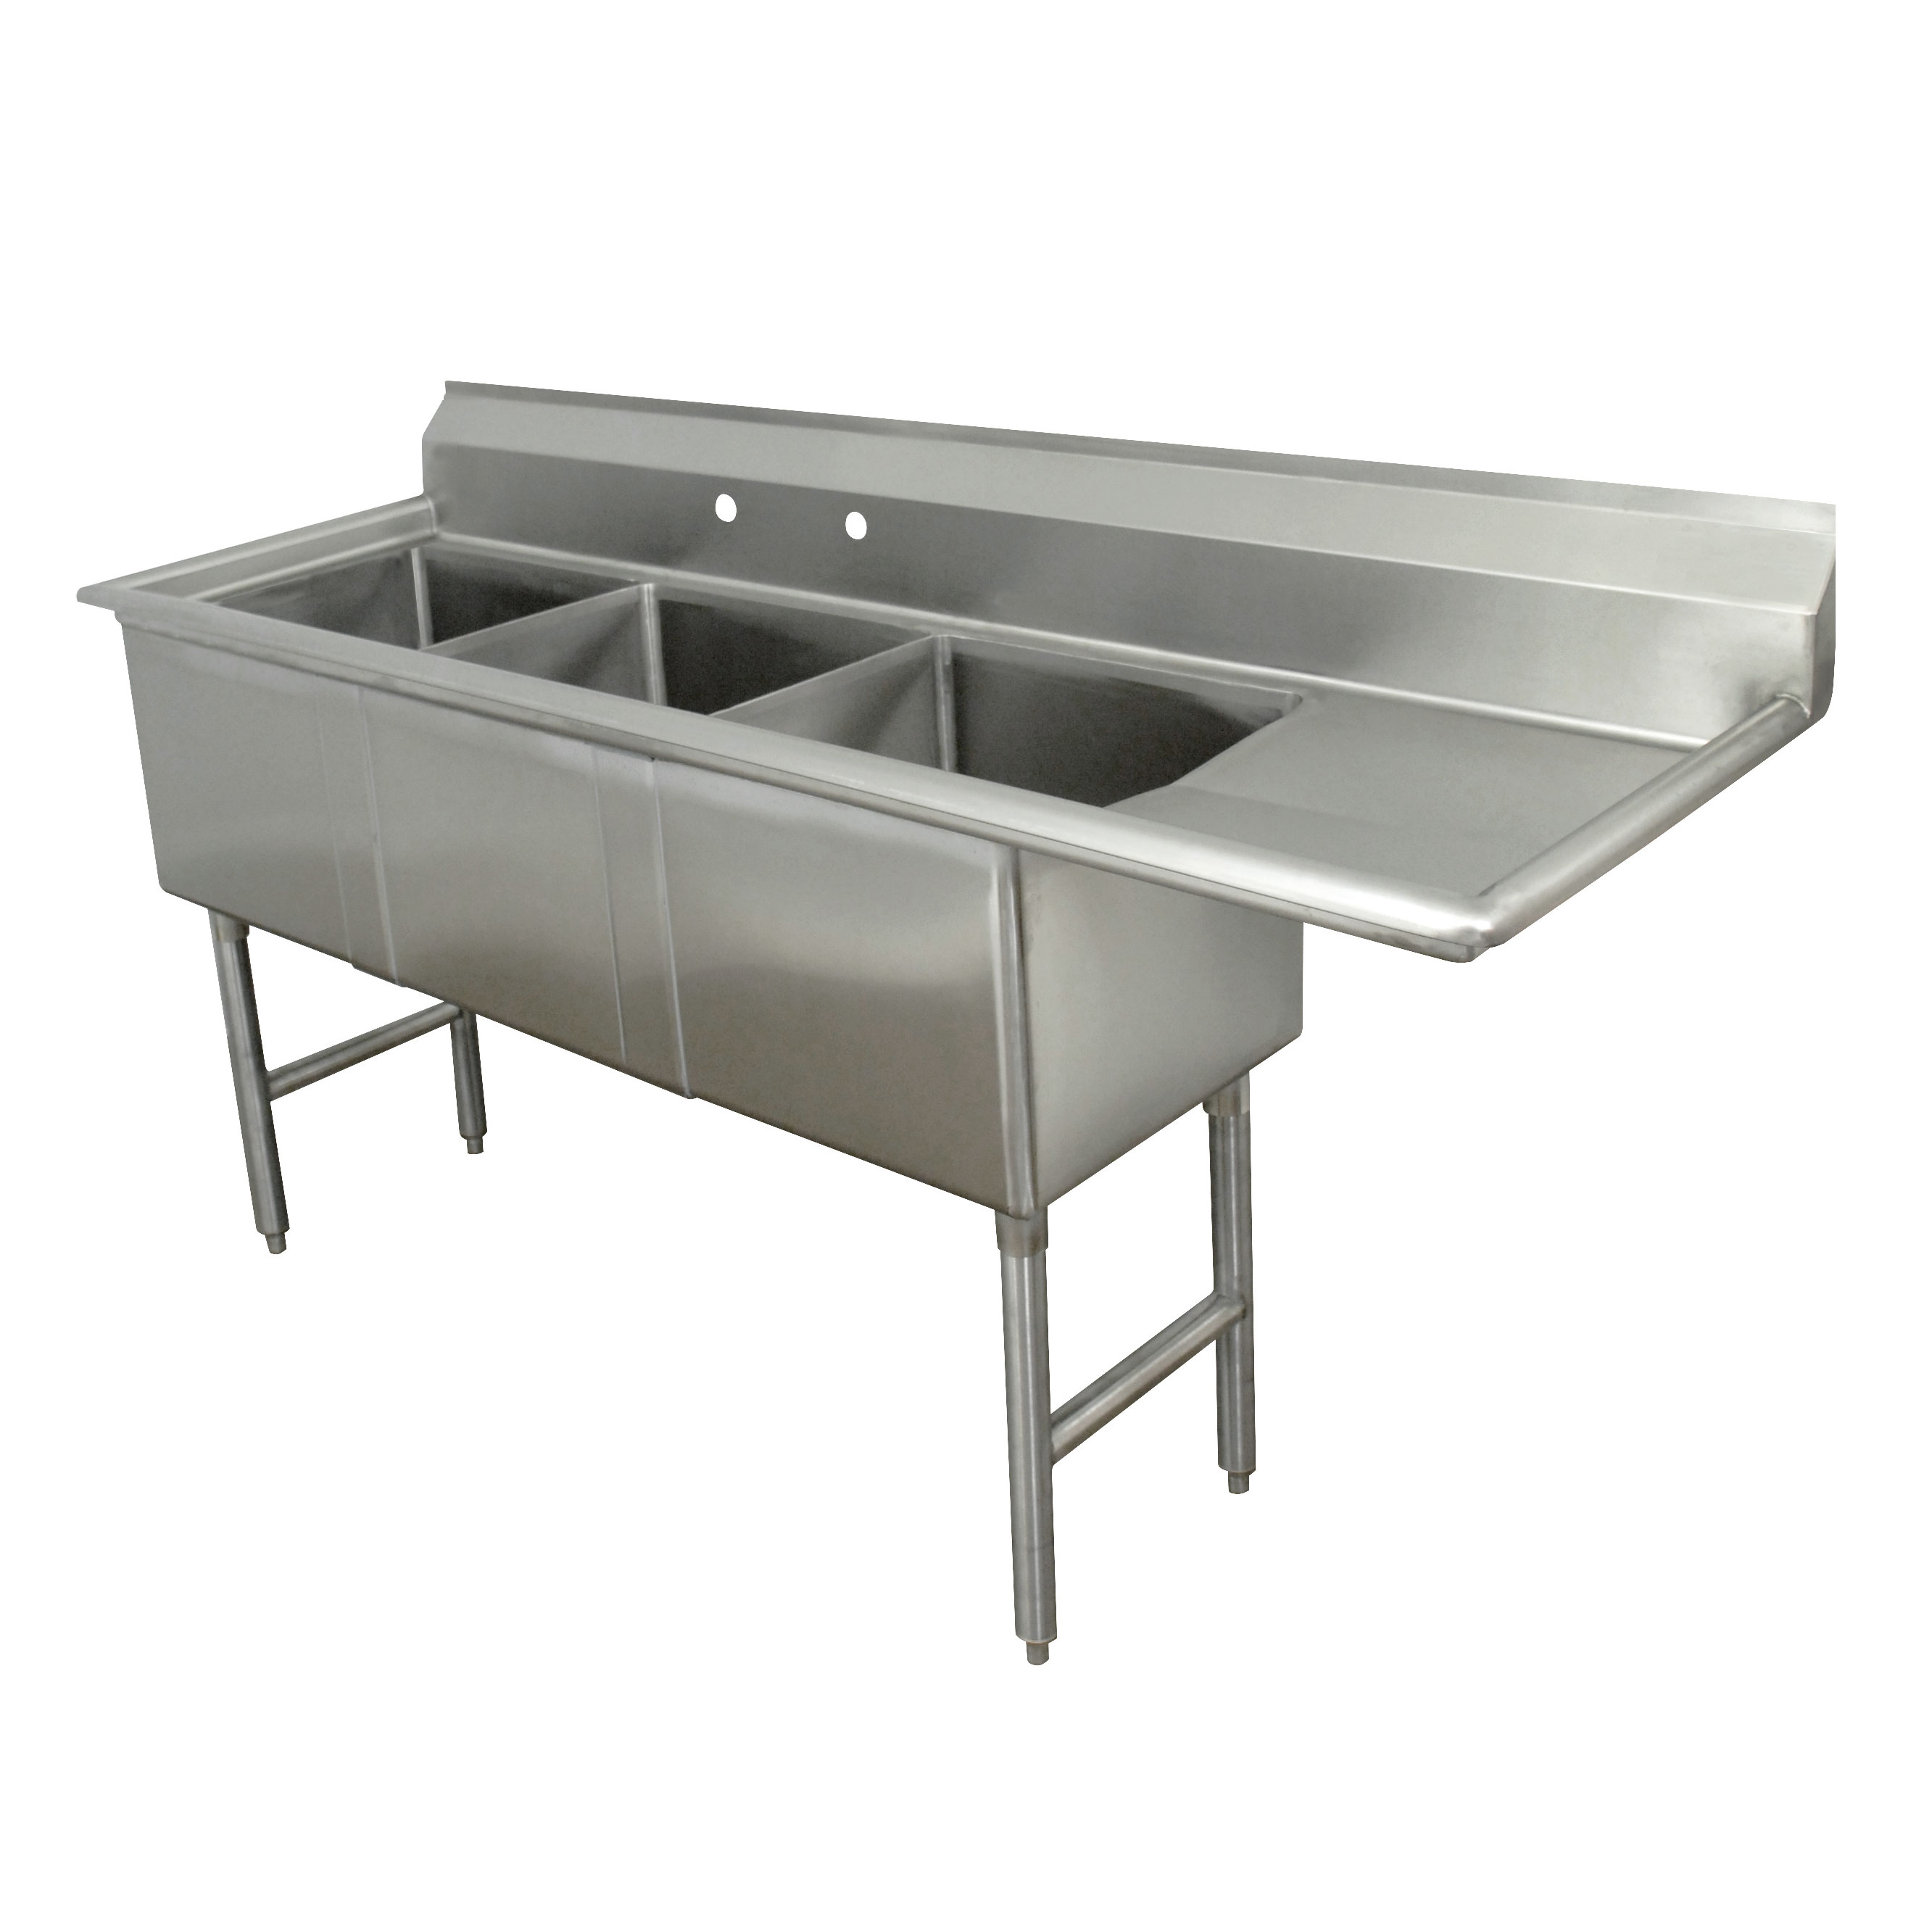 Advance Tabco FC-3-1515-15R sink, (3) three compartment